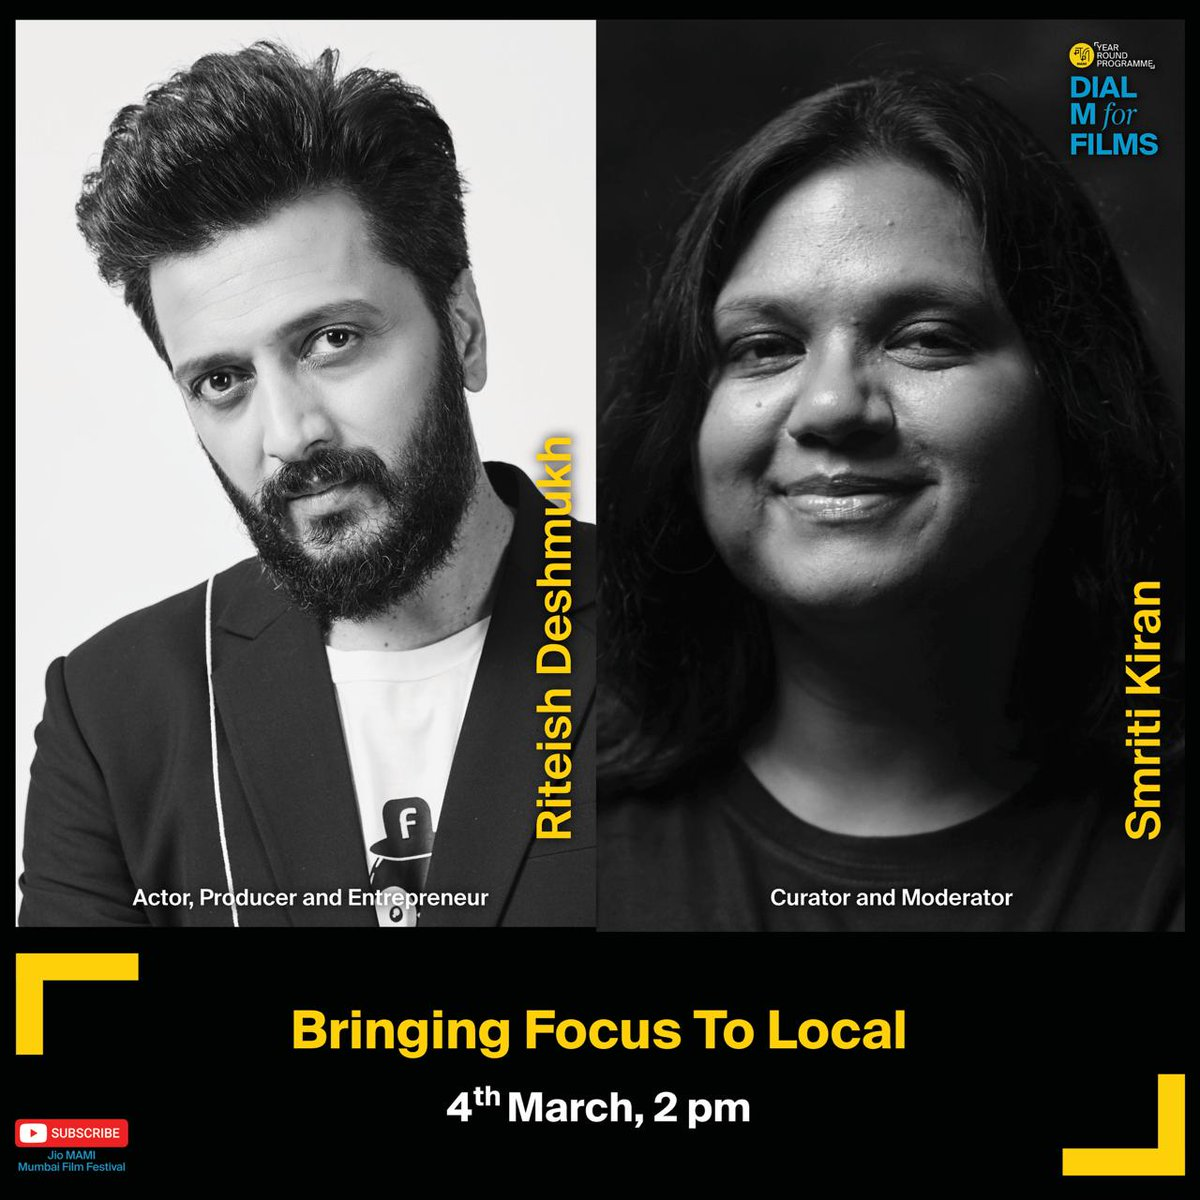 Actor @Riteishd turned producer w/ Balak Palak (2013). He has produced 6 Marathi films since then & is working on #NagrajManjule's trilogy on Chhatrapati Shivaji Maharaj. Catch him chat about bringing focus to local w/ @smritikiran on #DialMForFilms. Regr: